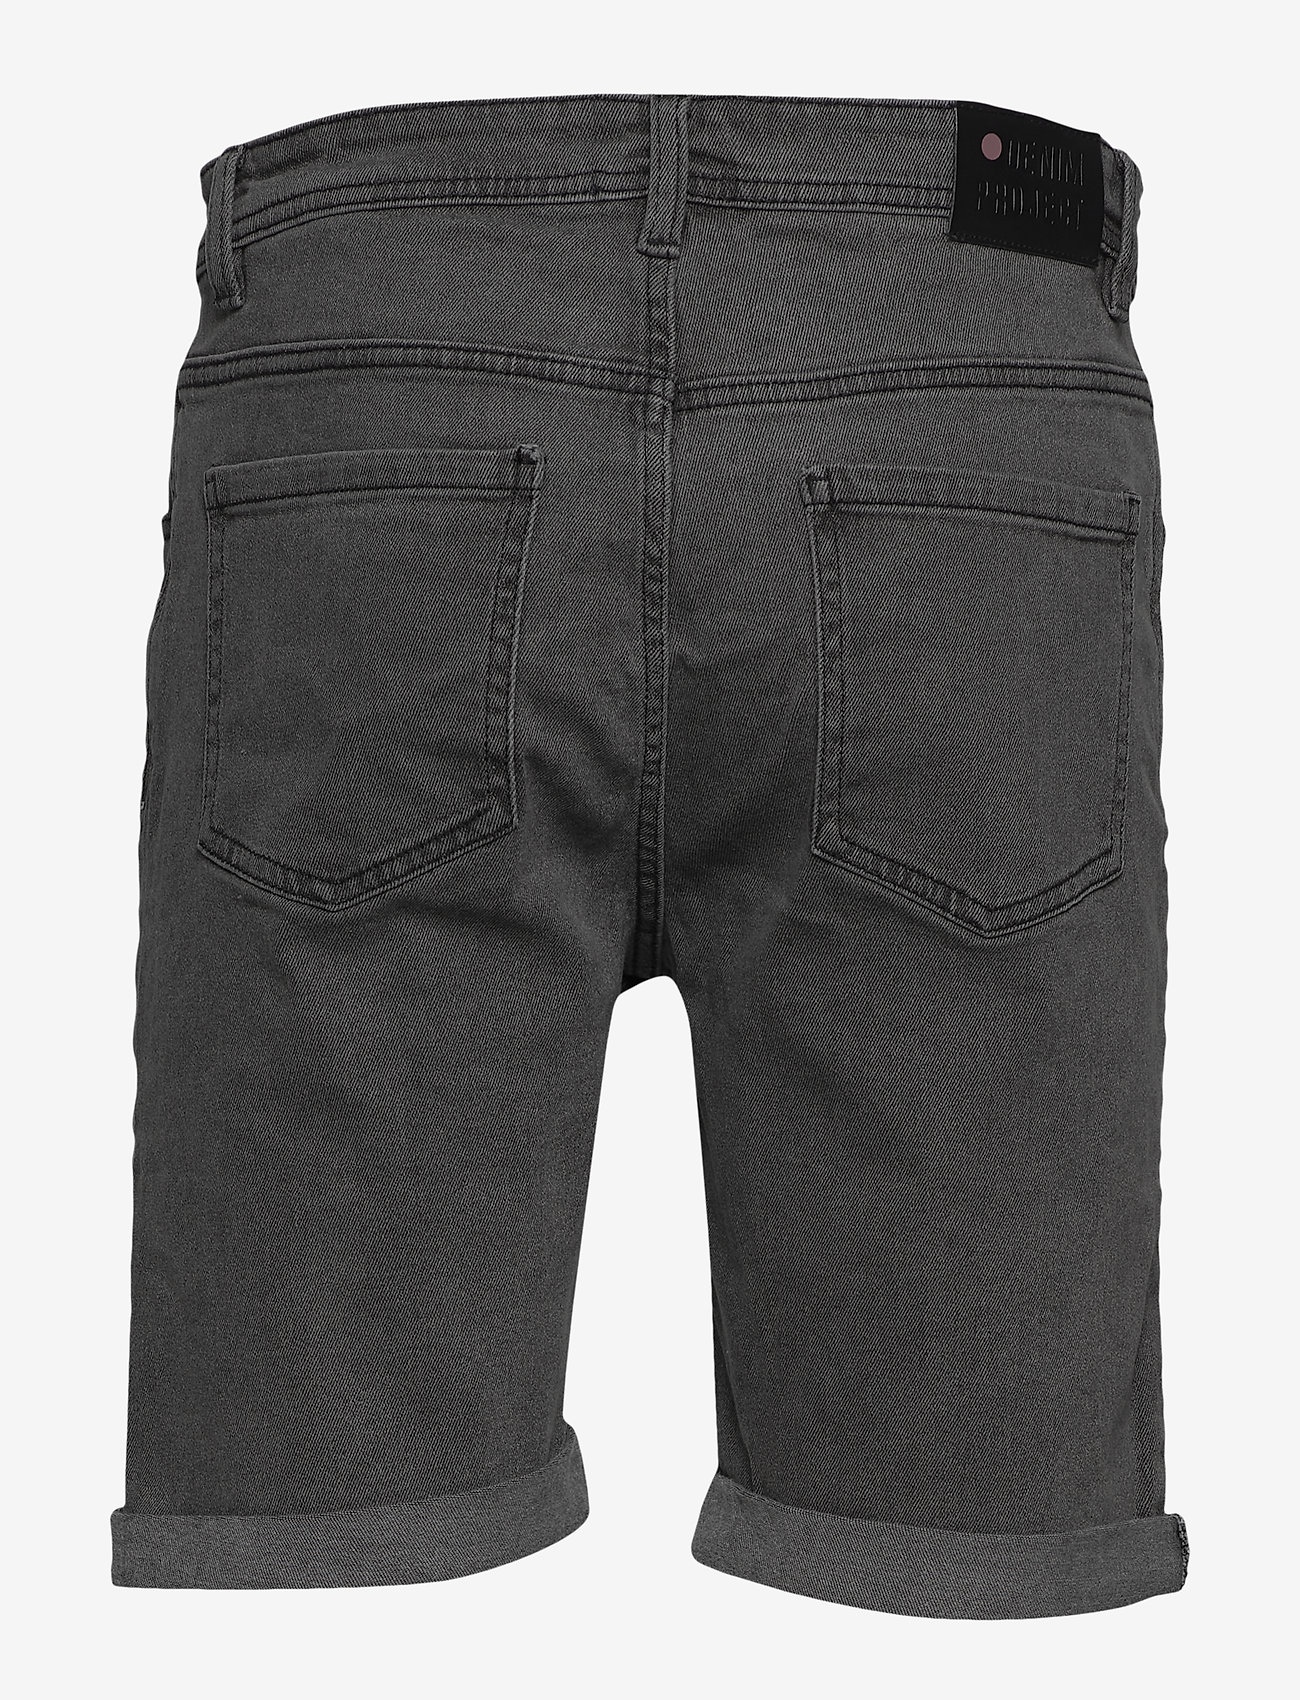 Denim project - Mr. Orange - denim shorts - grey - 1